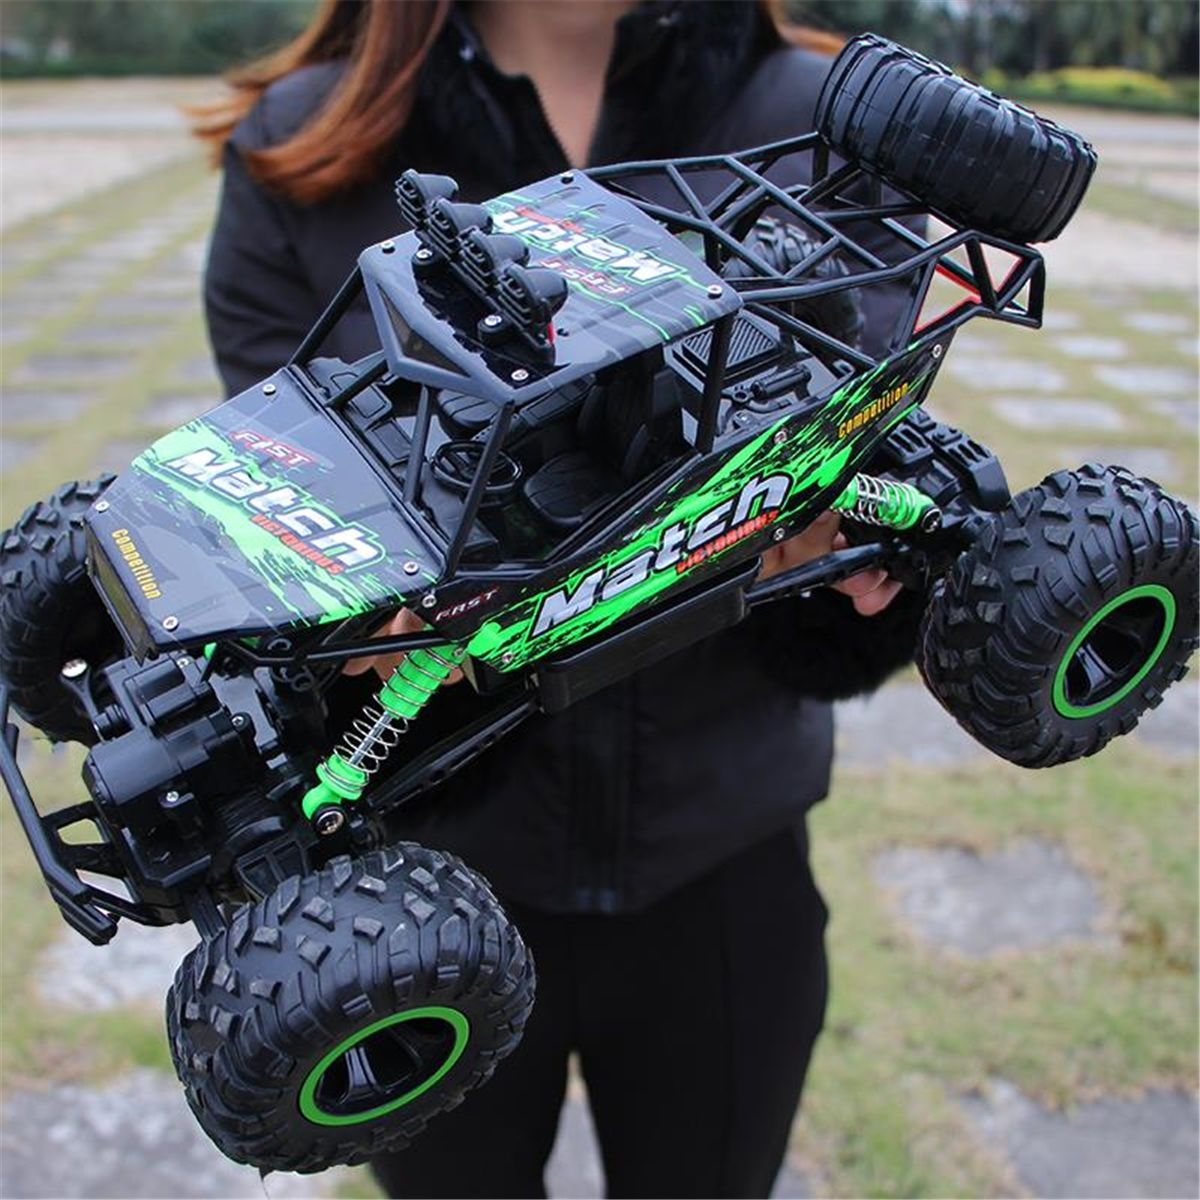 Toys Rc cars, Monster trucks, Remote control cars